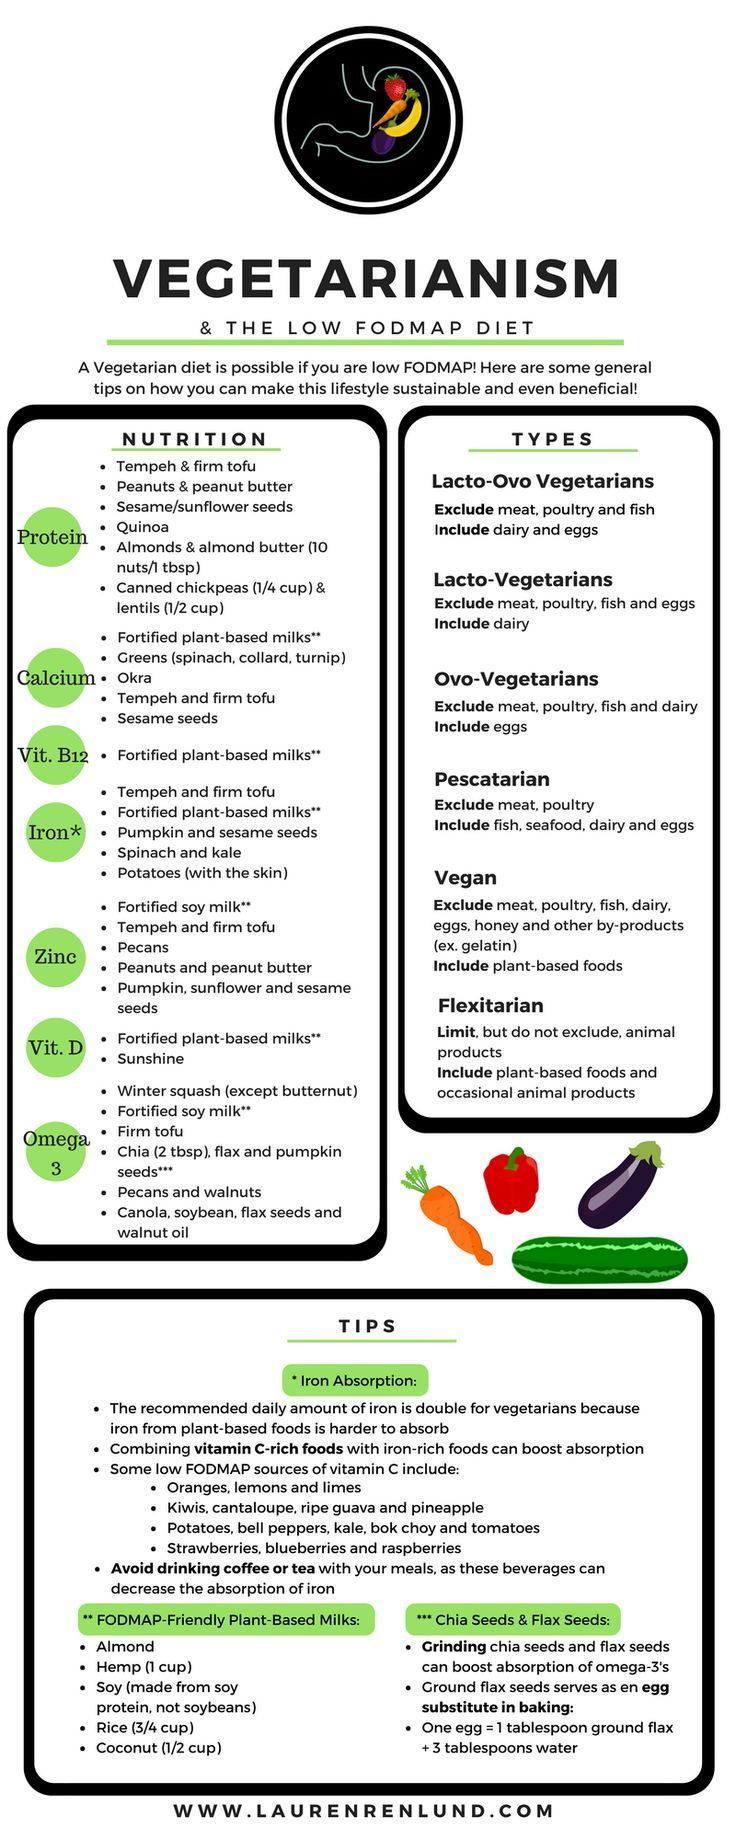 Vegetarian and vegan diets on the Low FODMAP Diet. Please work with a trained dietitian if you are on the low FODMAP diet, especially if you have additional restrictions such as a vegan/vegetarian diets. Click for an entire article about vegetarianism, low FODMAP and nutrients of concern :)